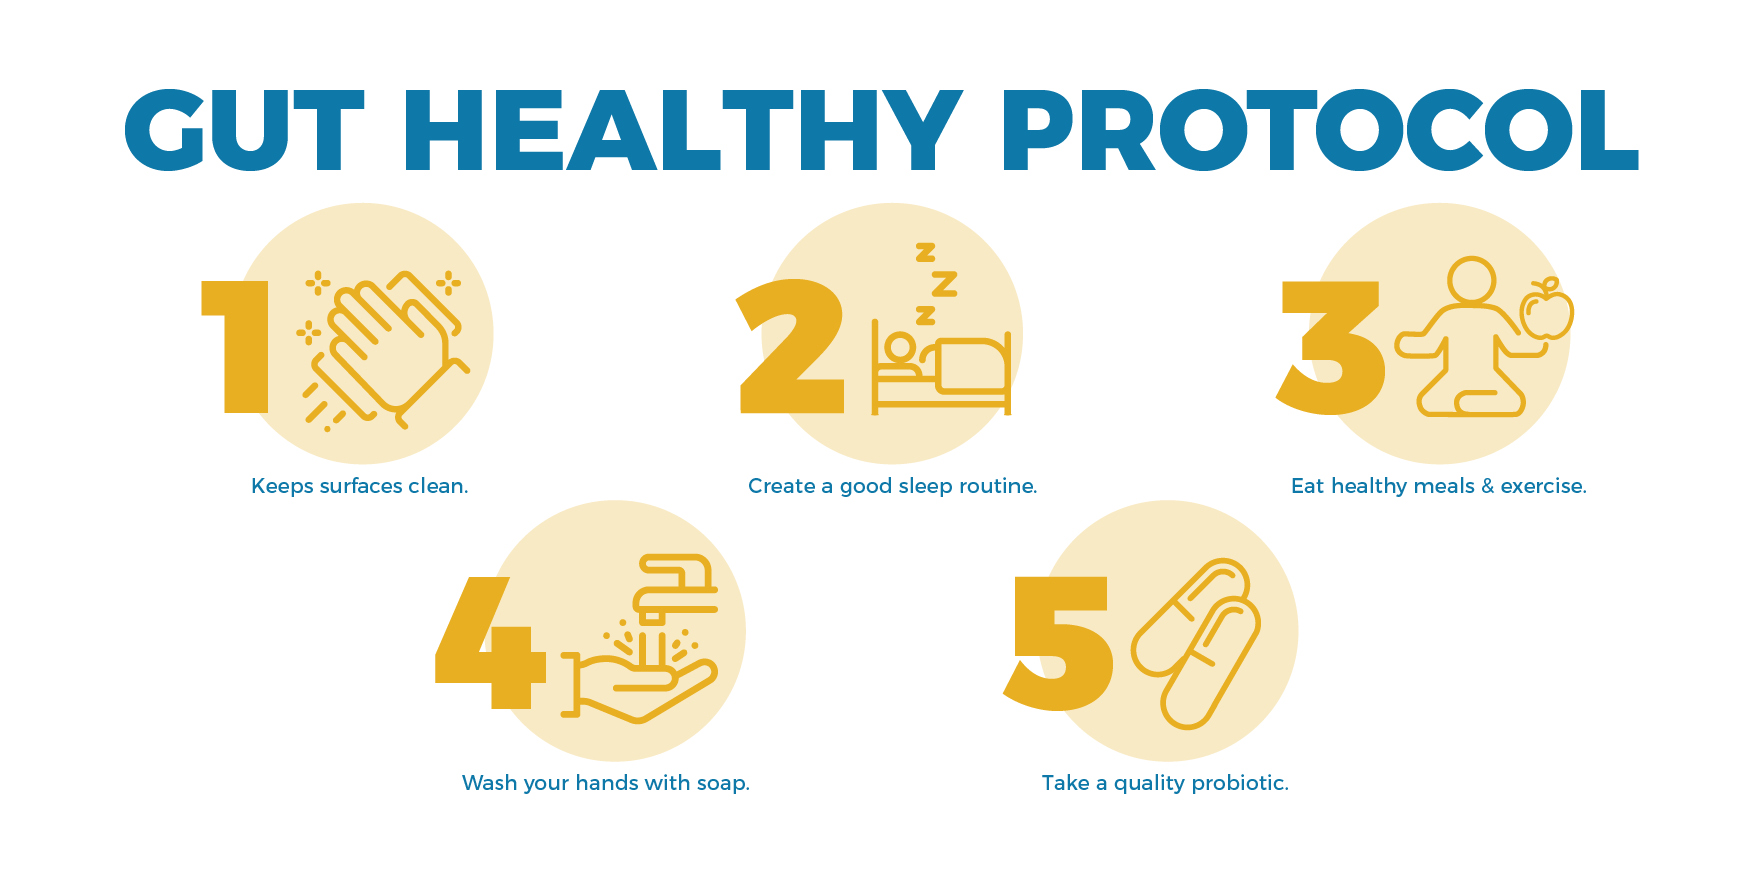 Healthy Gut Protocol Instructions